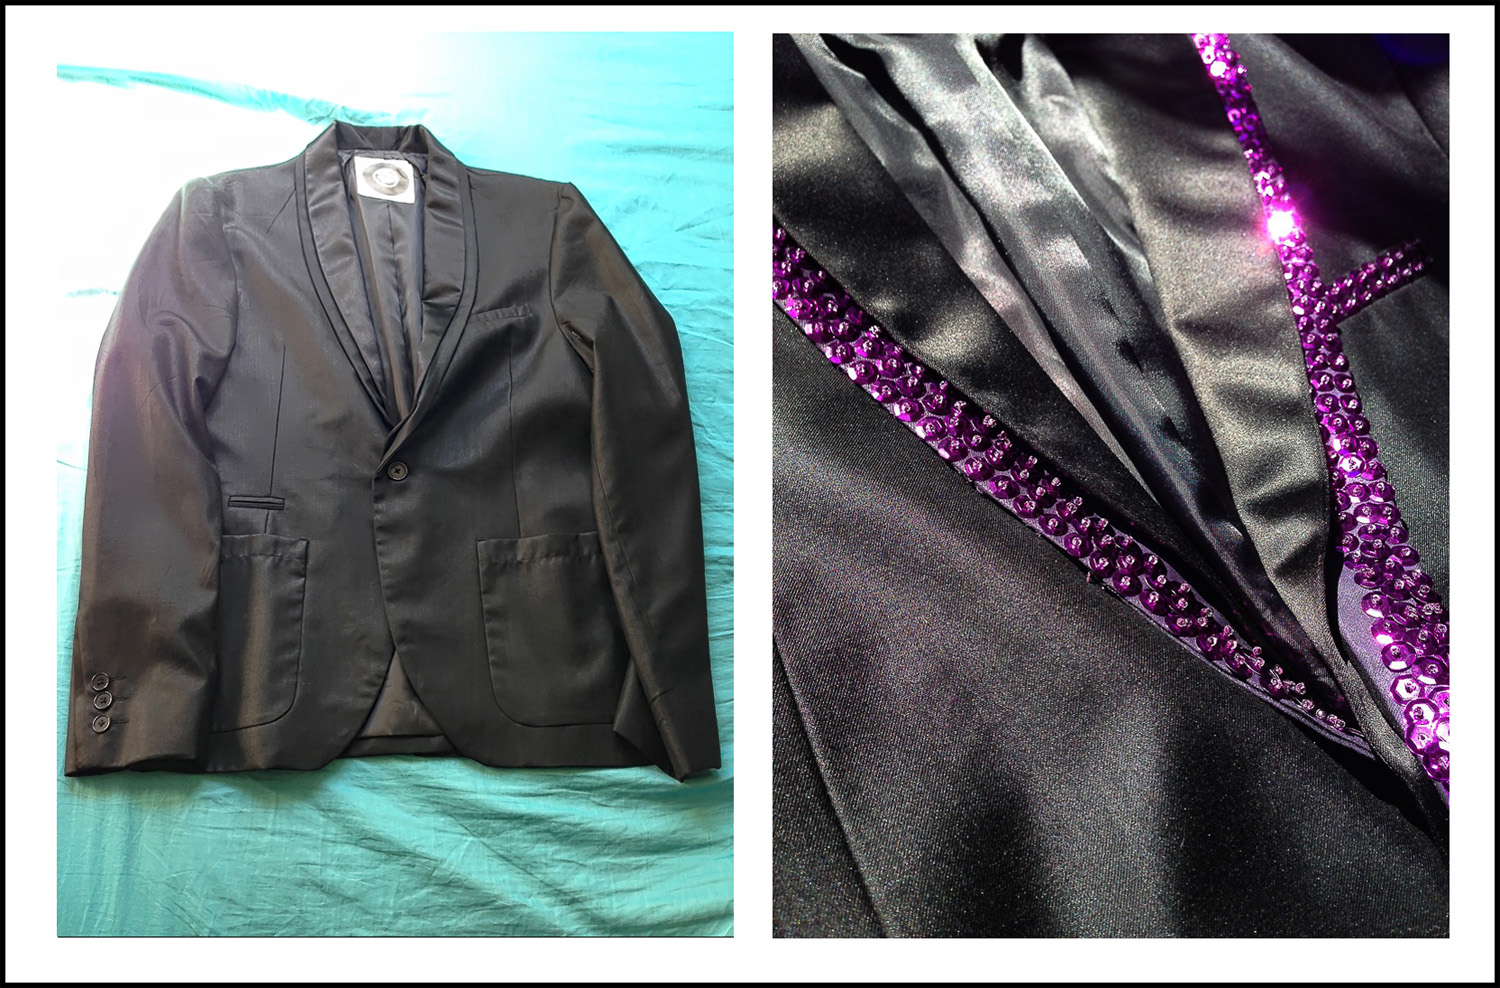 Kanen's jacket. Before and after.